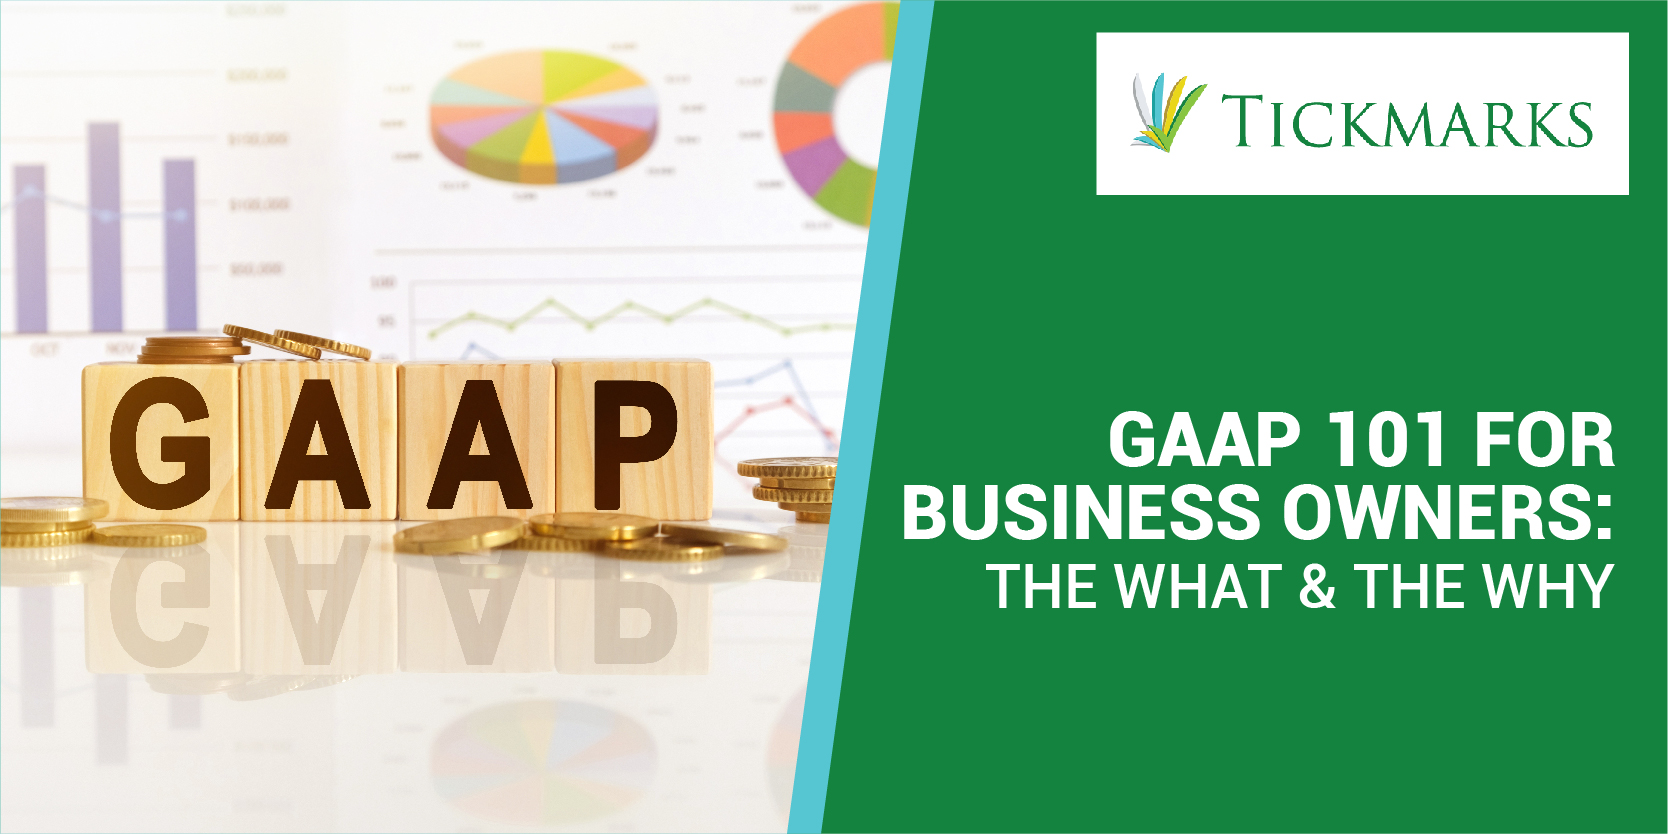 Wooden blocks with letters GAAP, coins and charts representing accounting services.